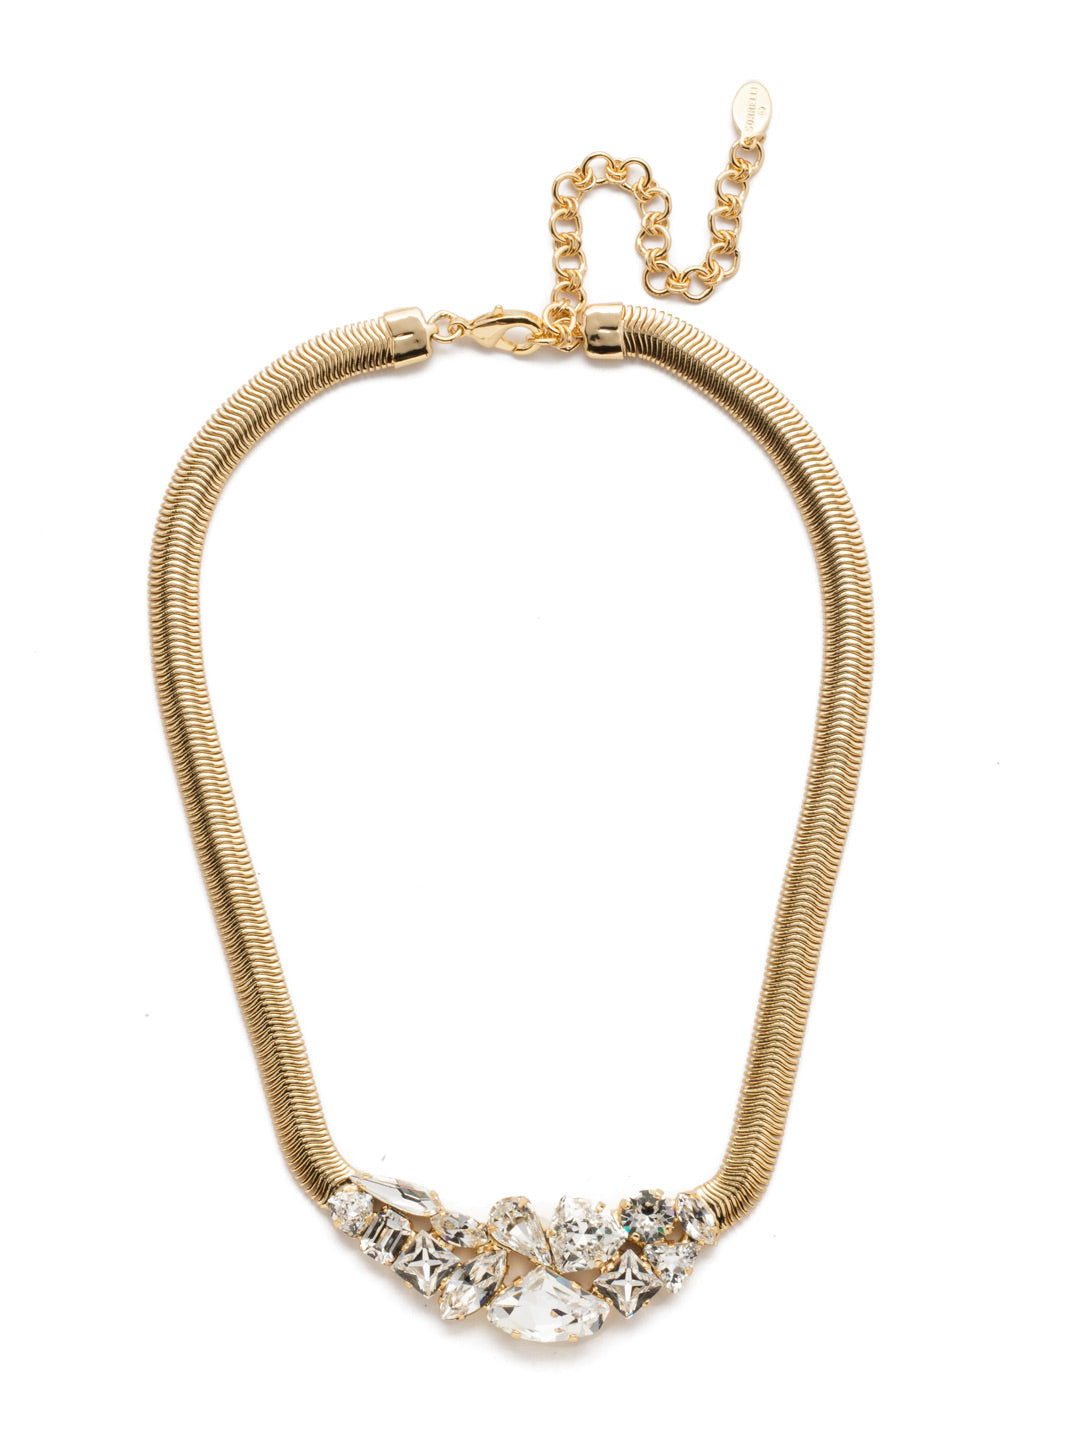 Darla Statement Necklace - 4NEP3BGCRY